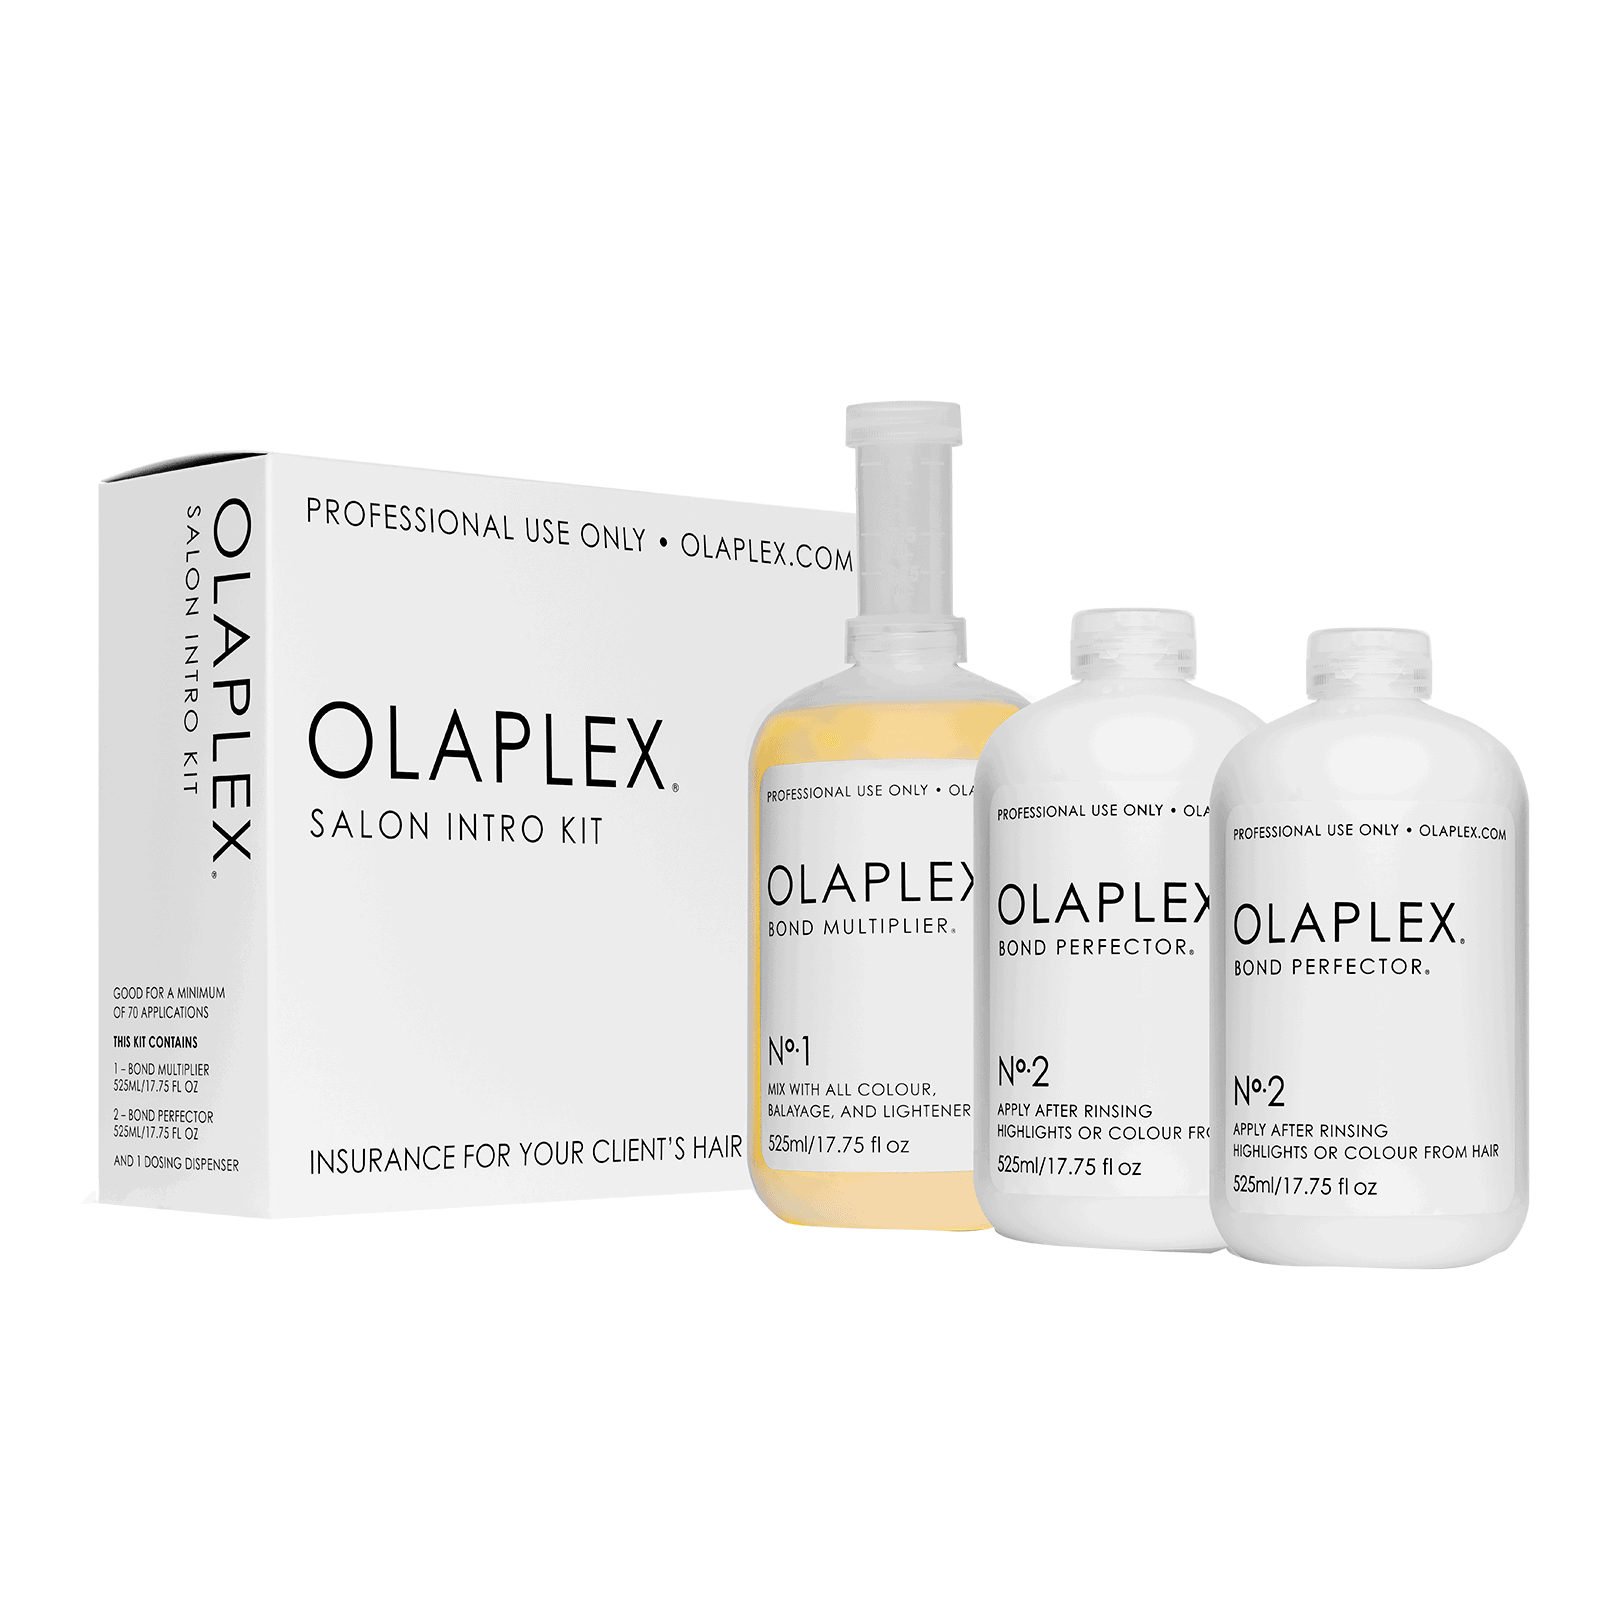 Olaplex Large Salon Kit - 140 applications